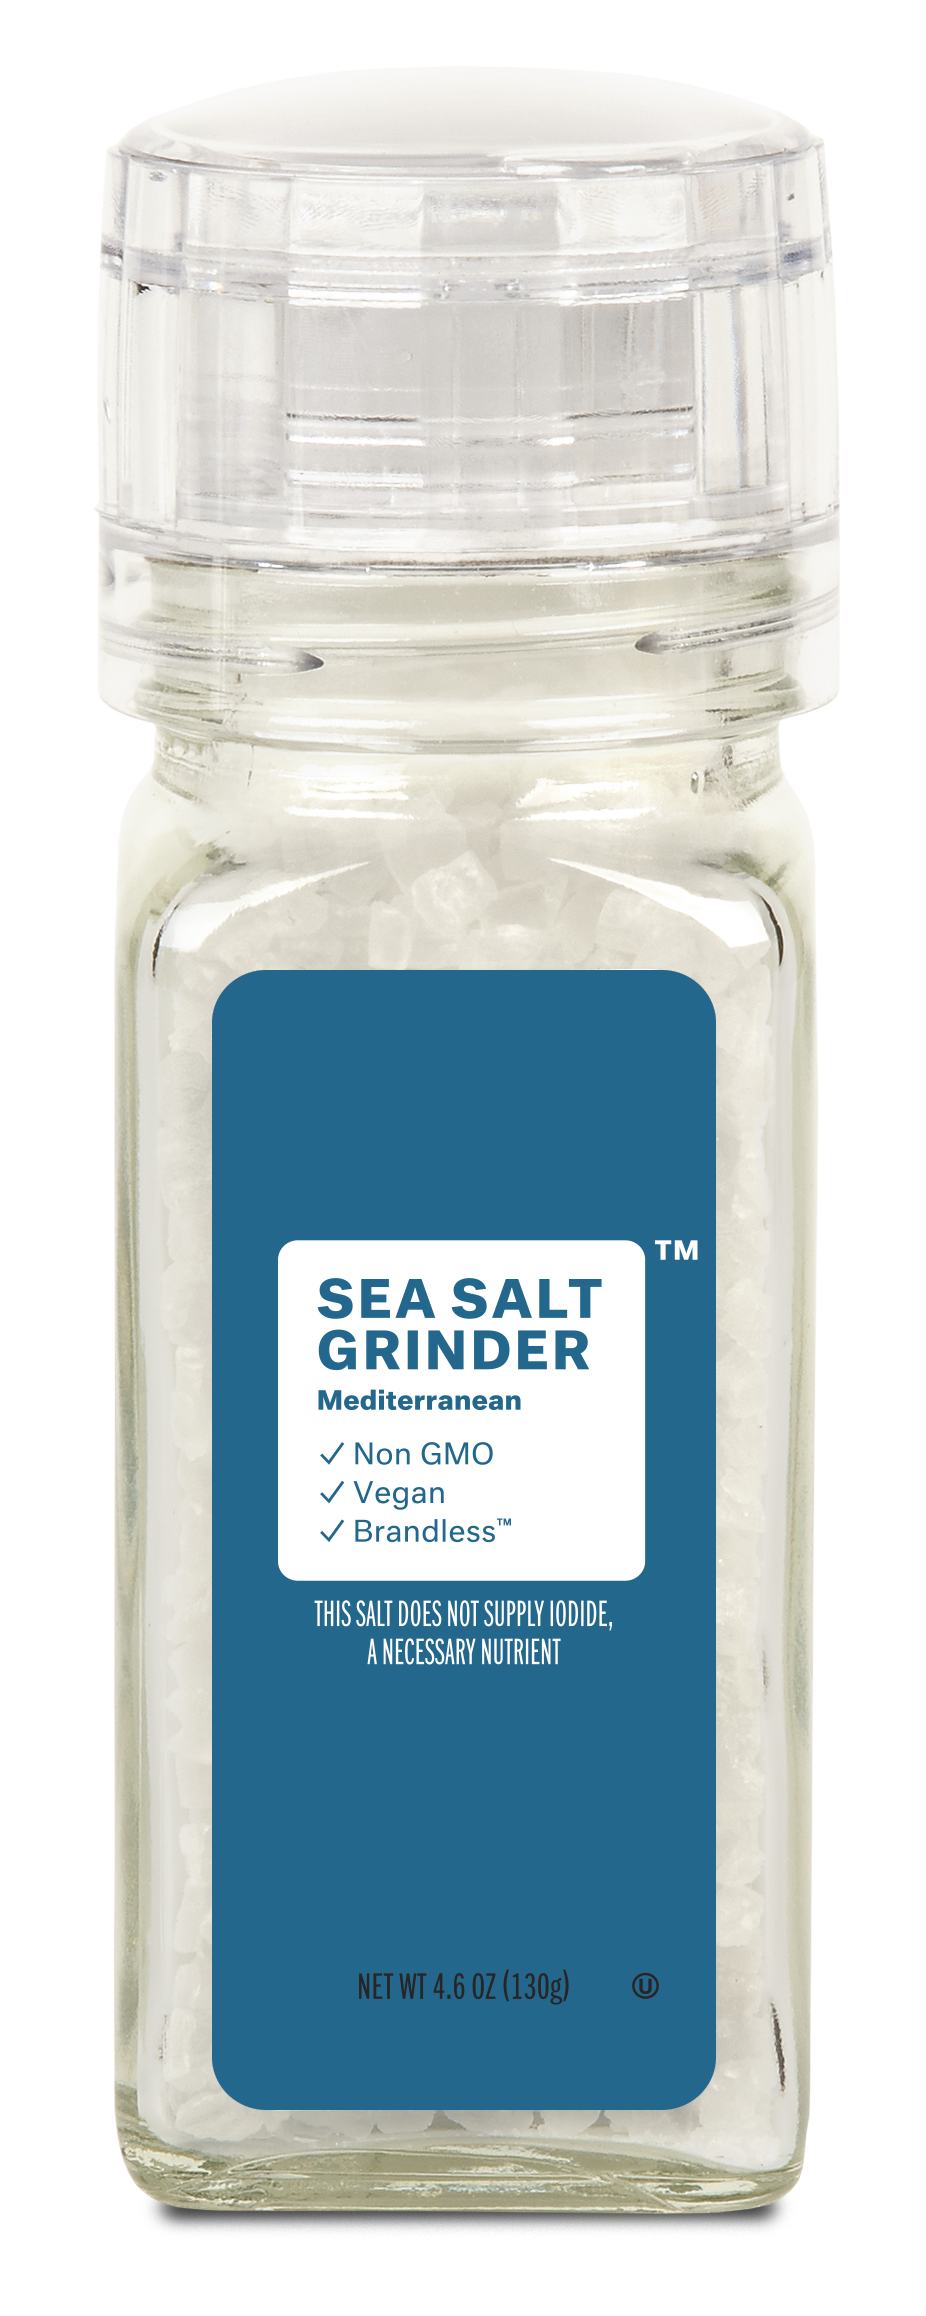 Brandless: Sea Salt Grinder, Mediterranian